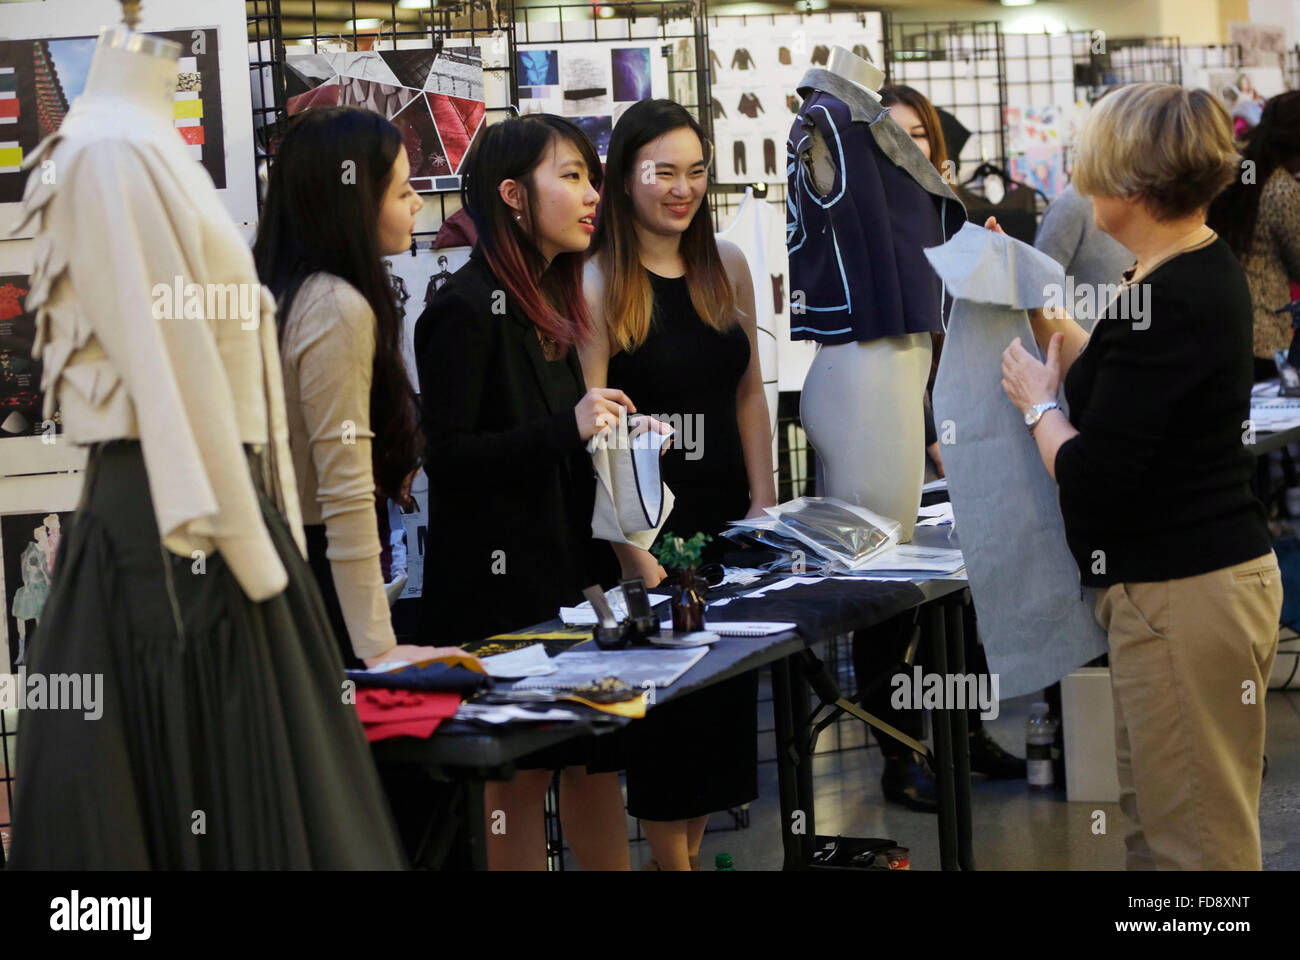 Vancouver Canada 28th Jan 2016 Fashion Design Students Showcase Stock Photo Alamy